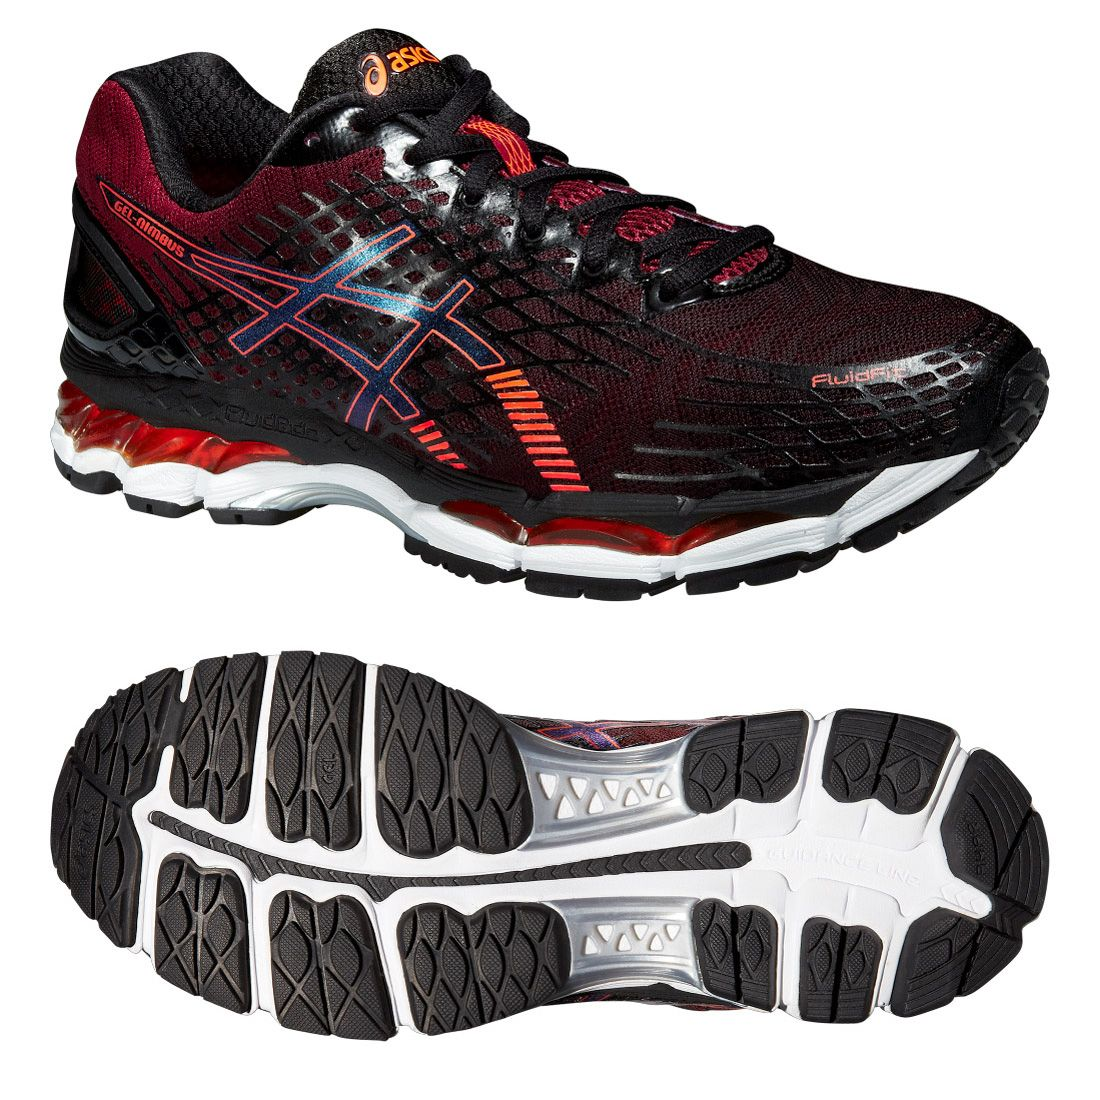 Asics Gel-Nimbus 17 Mens Running Shoes AW15 - Sweatband.com